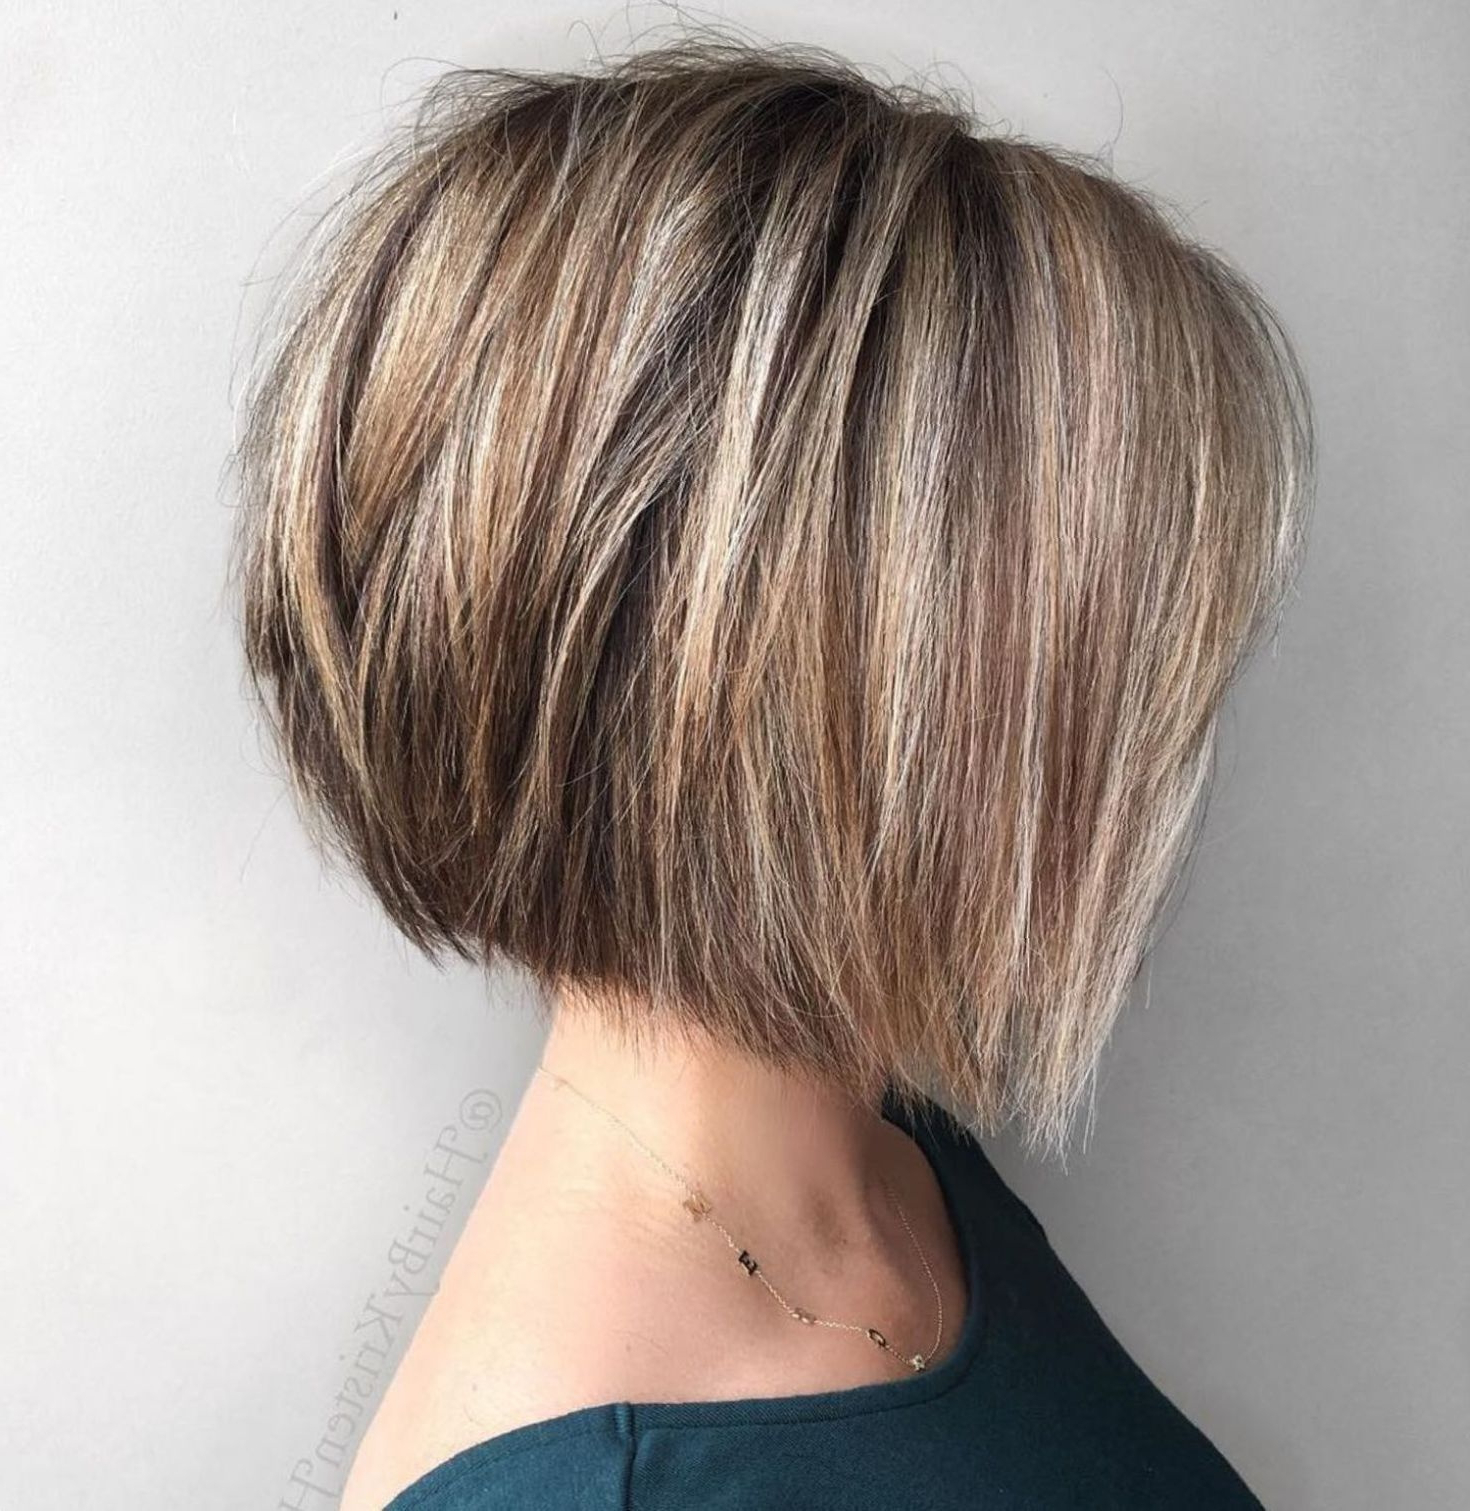 Wedding Ideas : Stacked Pixie Engaging 60 Classy Short Pertaining To Classy Pixie Haircuts (Gallery 12 of 20)